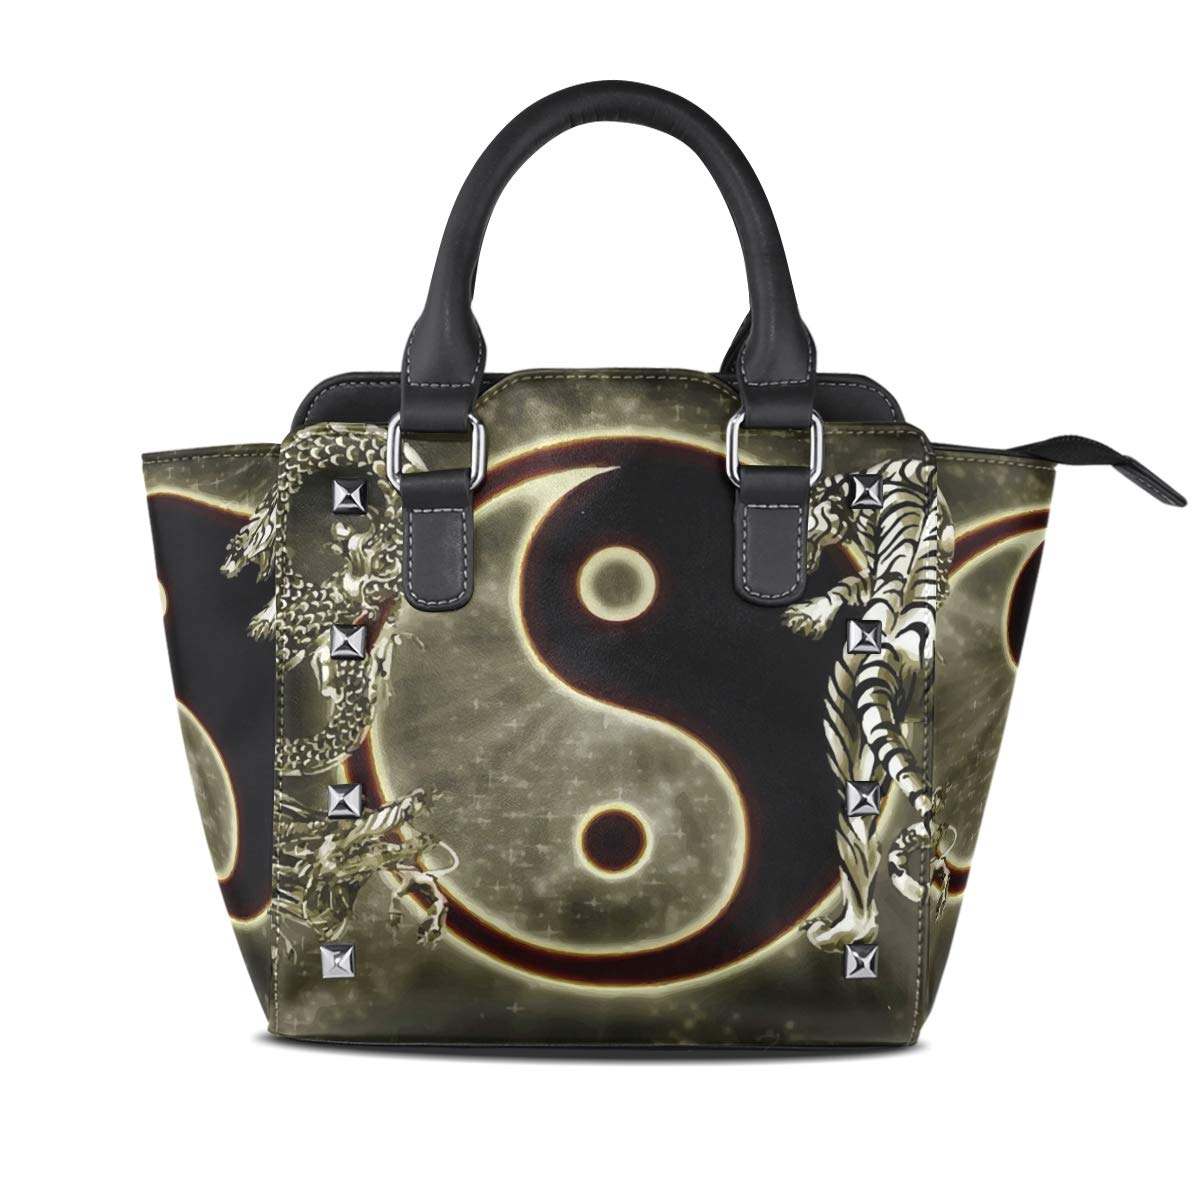 Design4 Handbag Bees And Flowers Genuine Leather Tote Rivet Bag Shoulder Strap Top Handle Women